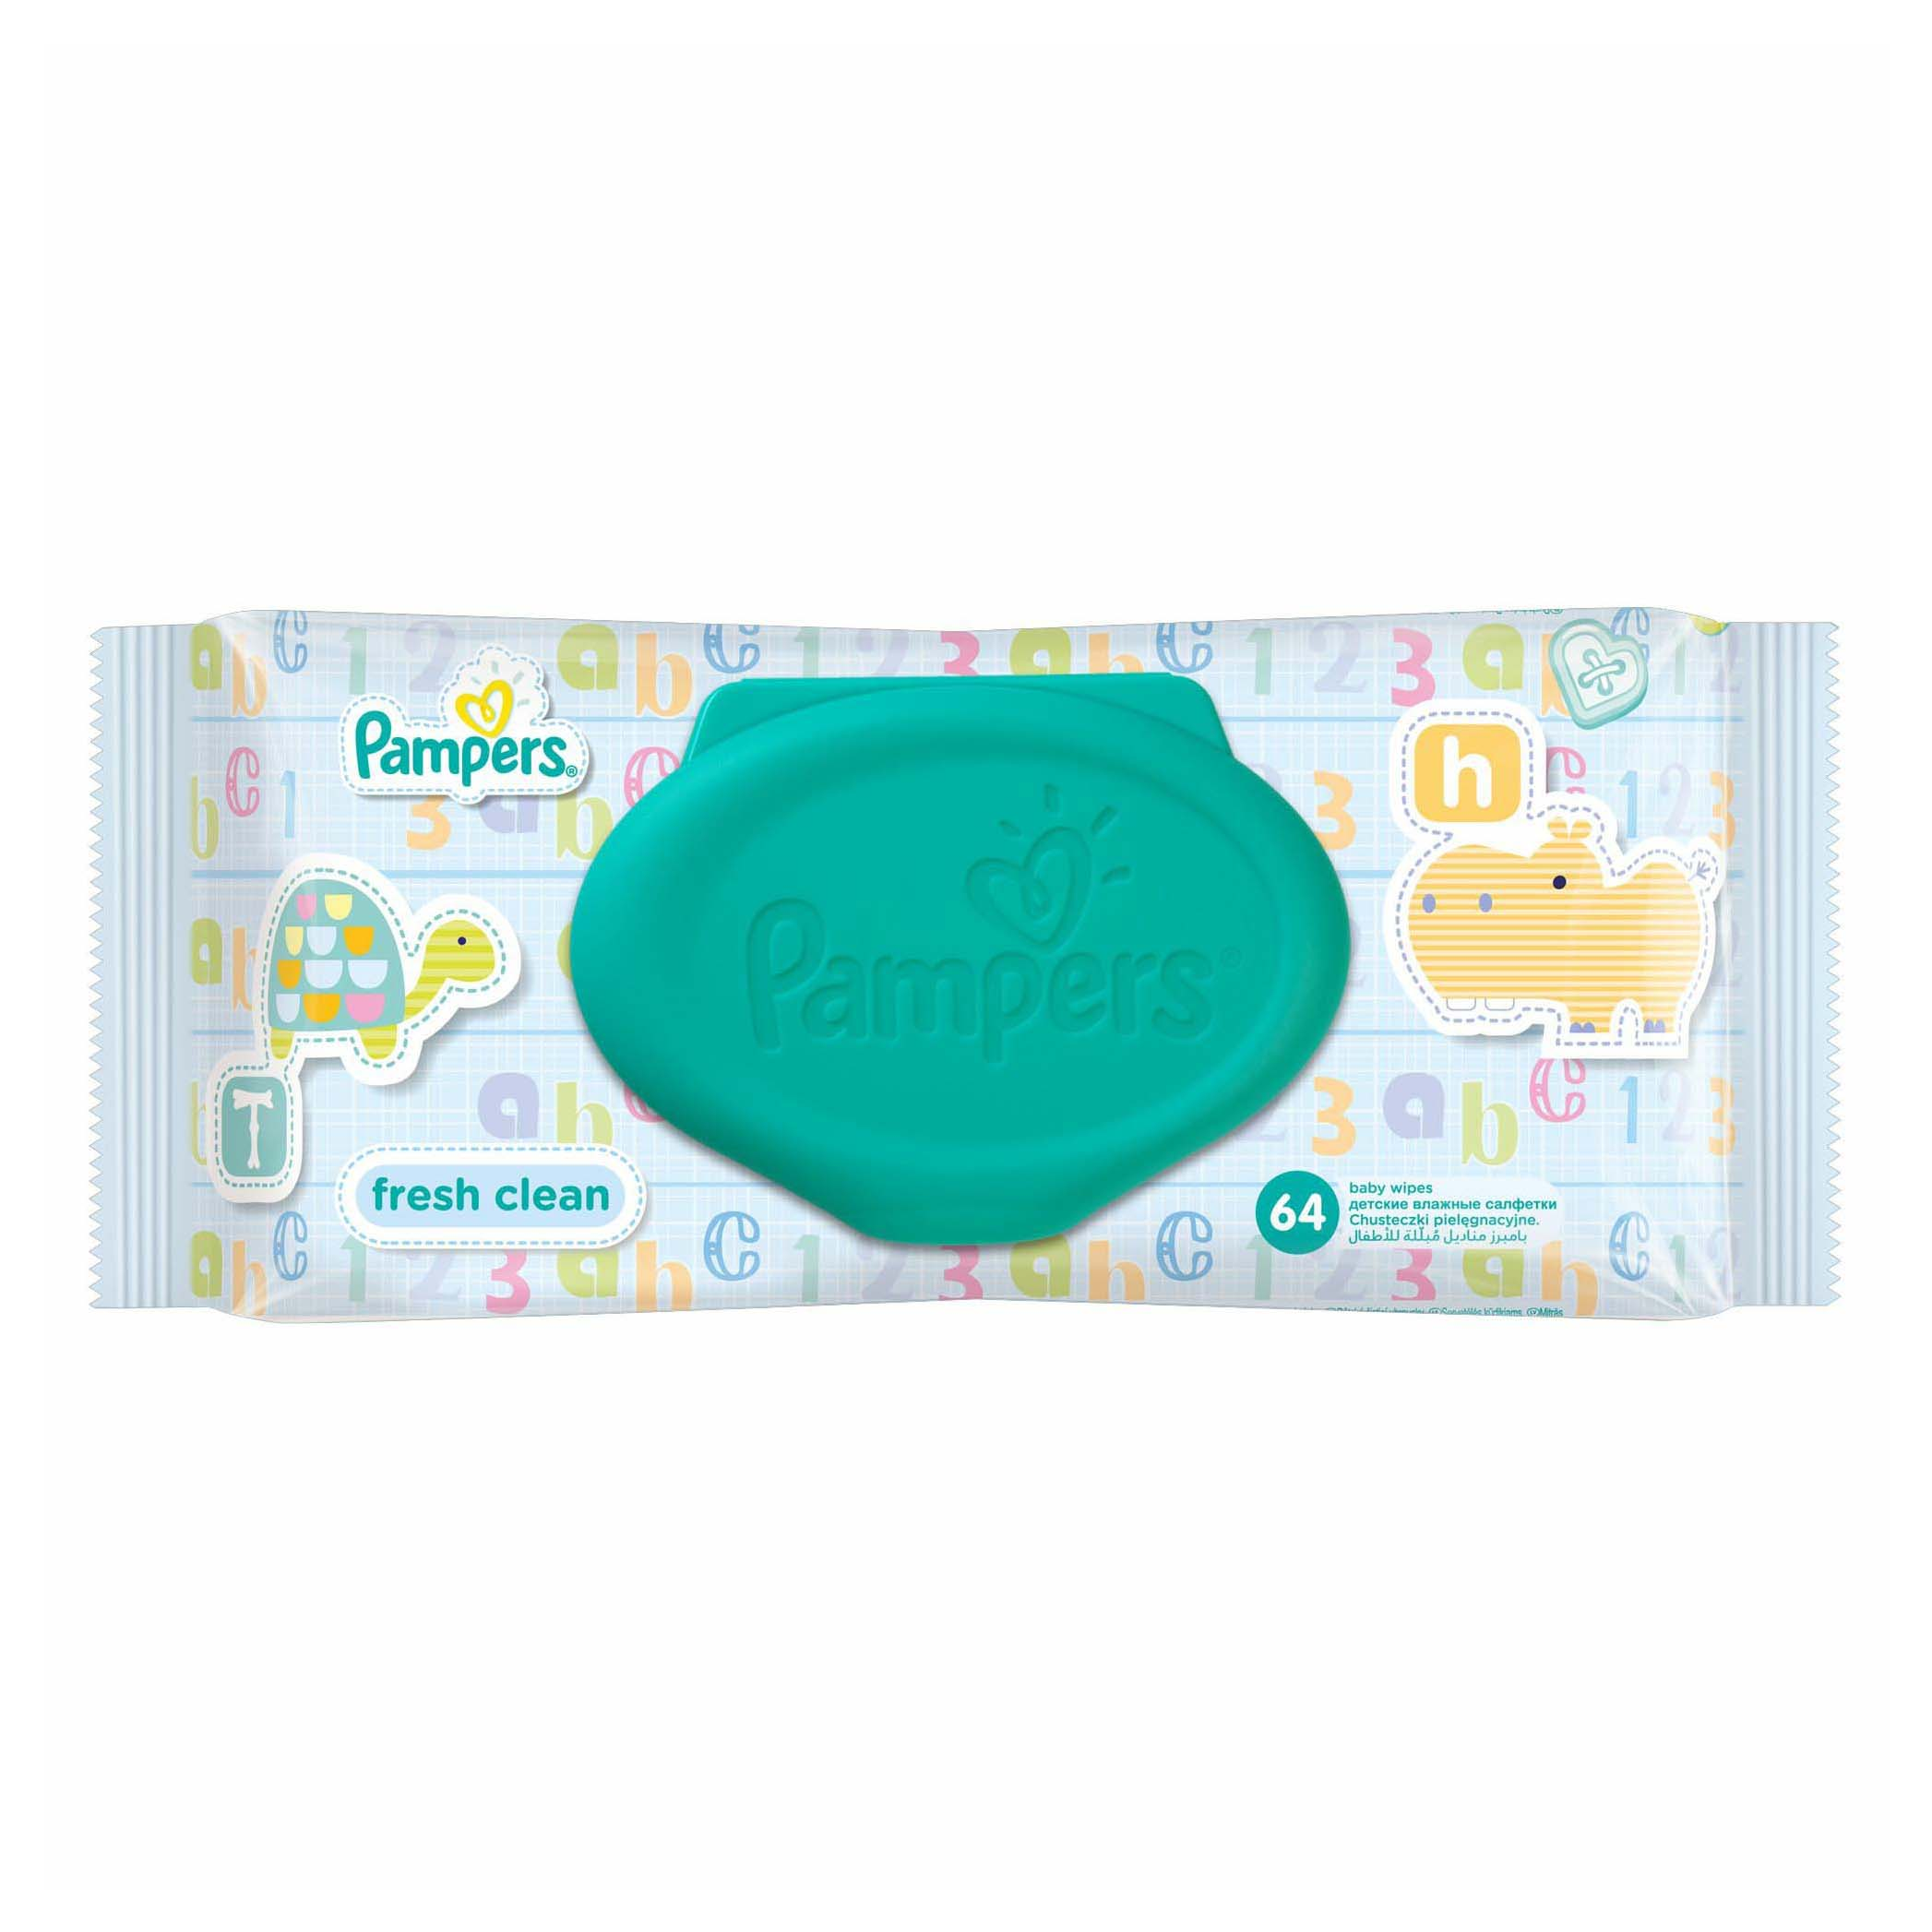 �������� Pampers Baby Fresh ������� ����